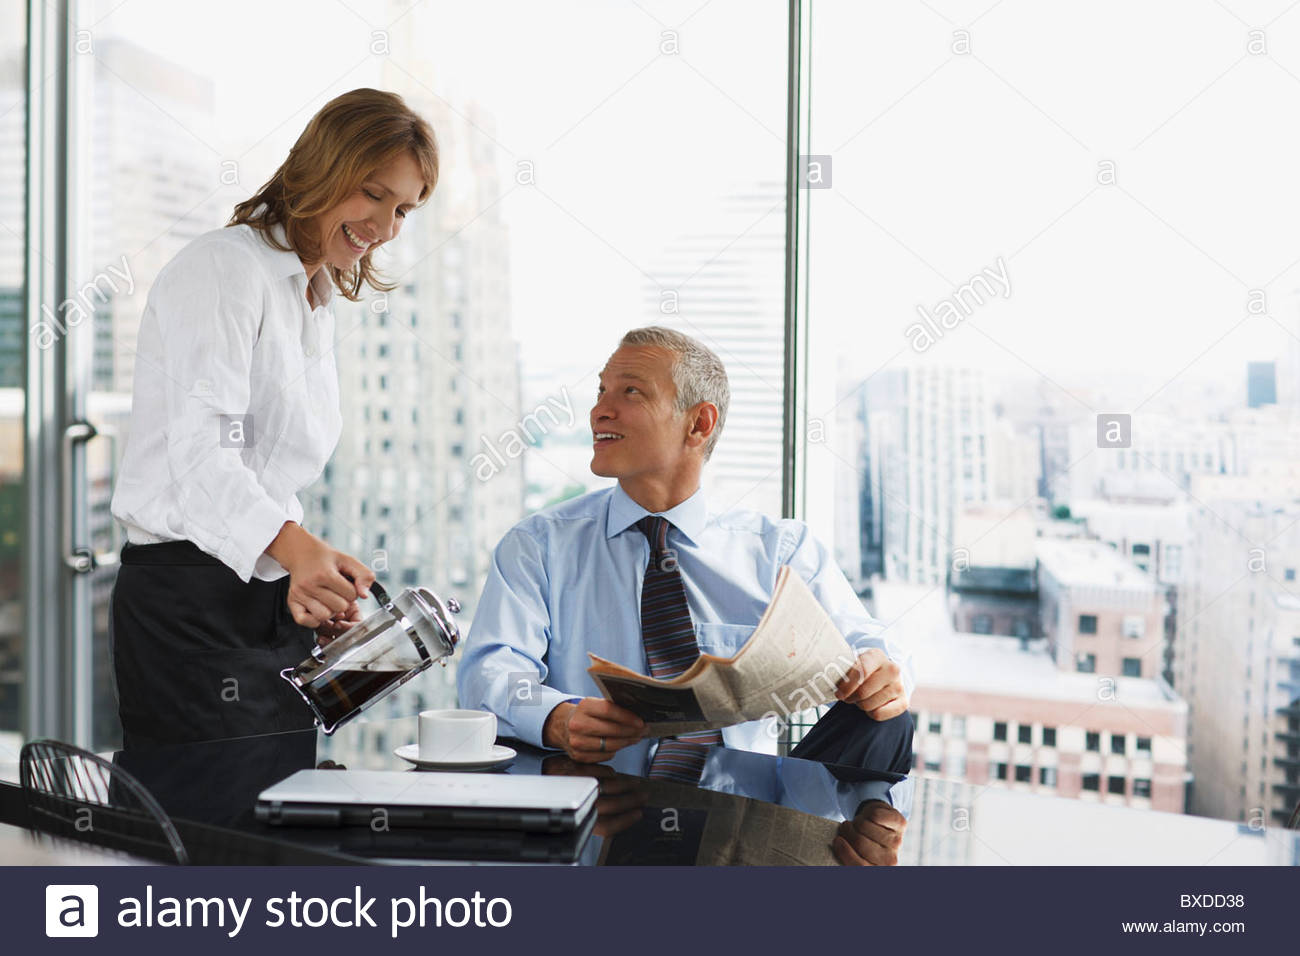 Businesswoman serving co-worker coffee in office - Stock Image